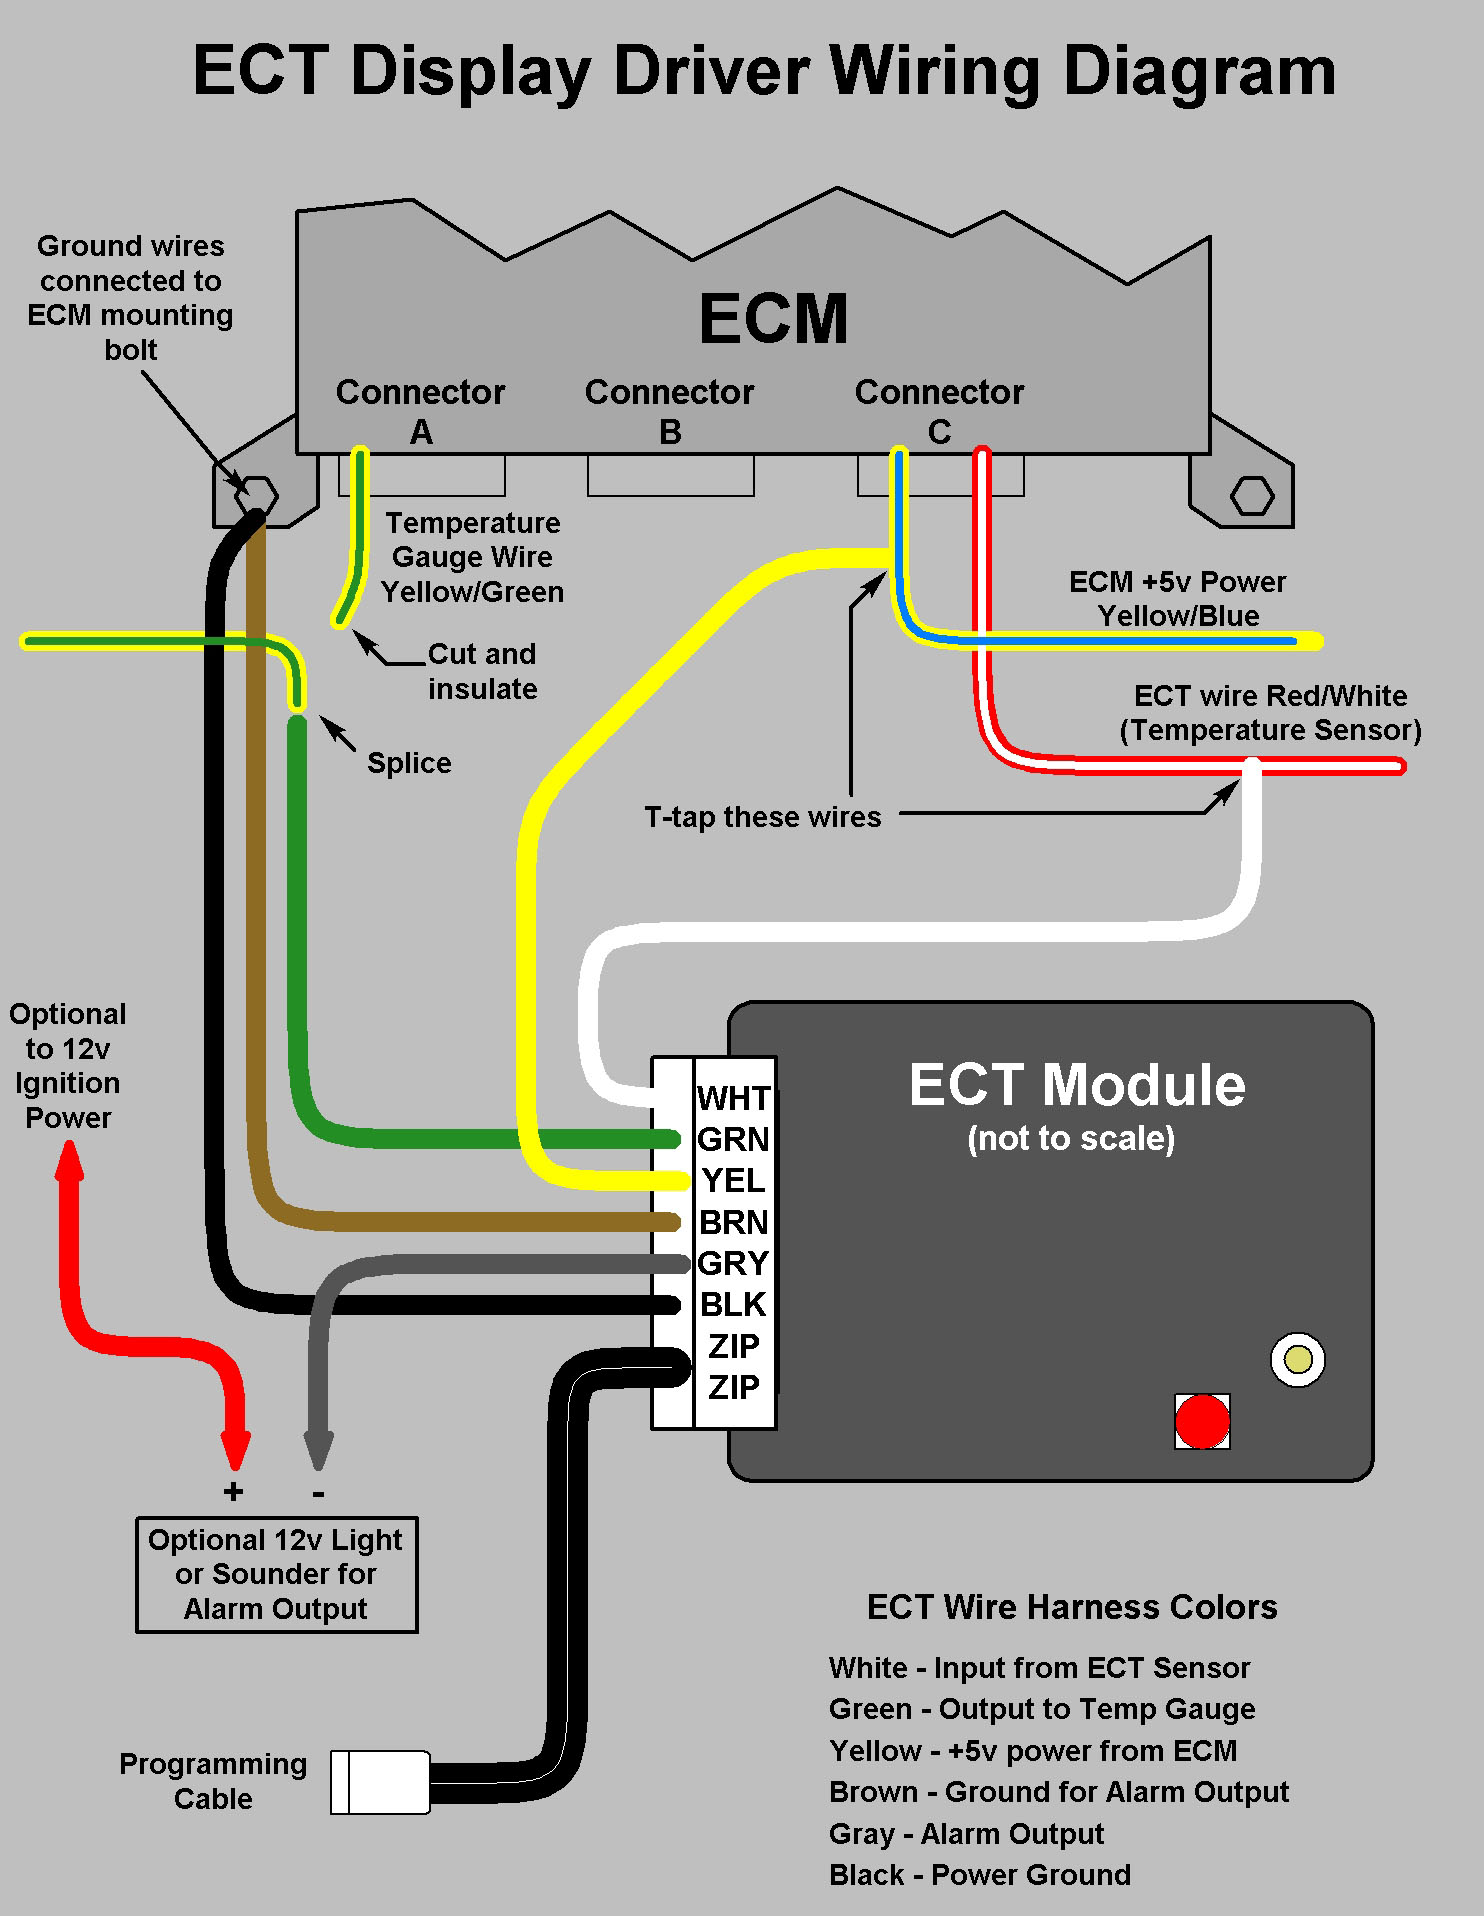 ECT wiring diagram ems wiring diagram medical diagram \u2022 free wiring diagrams life omex 710 wiring diagram at sewacar.co